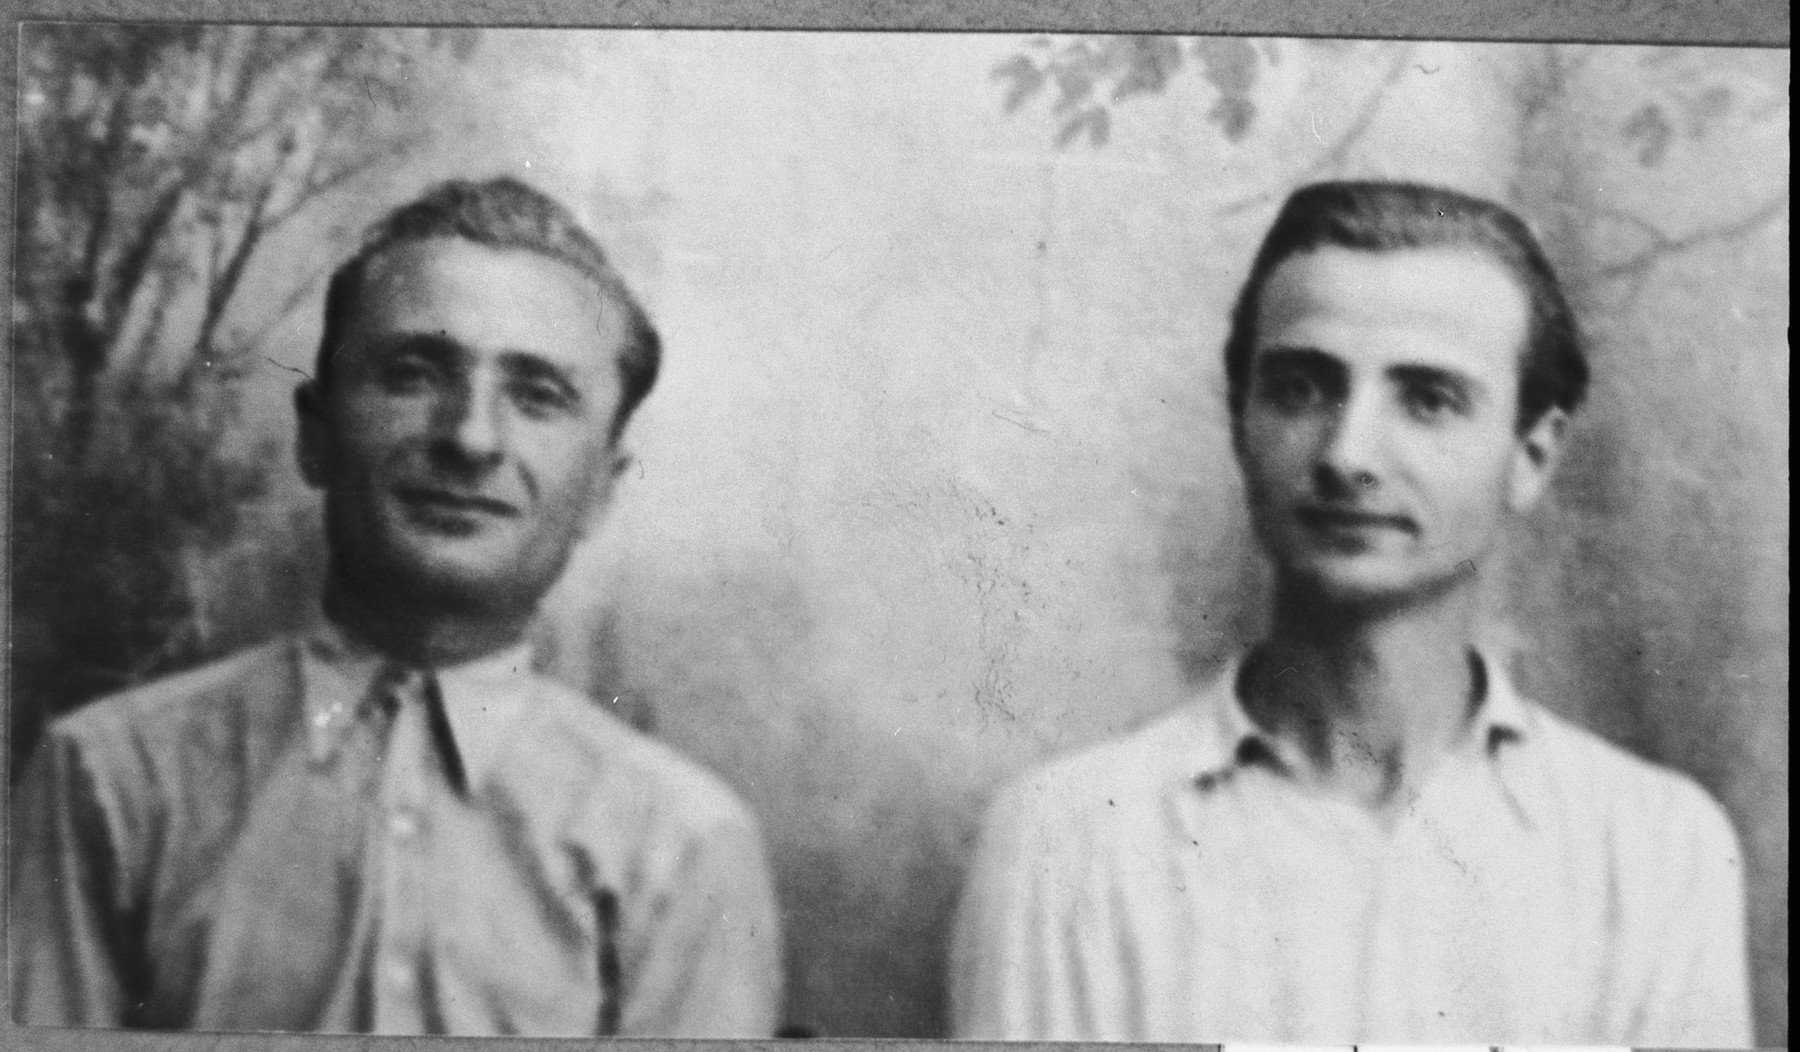 Portrait of Pepo and Isak Aroesti, sons of Samuel Aroesti.  Pepo was a second-hand dealer and Isak, a student.  They lived at Ferizovatska 13 in Bitola.